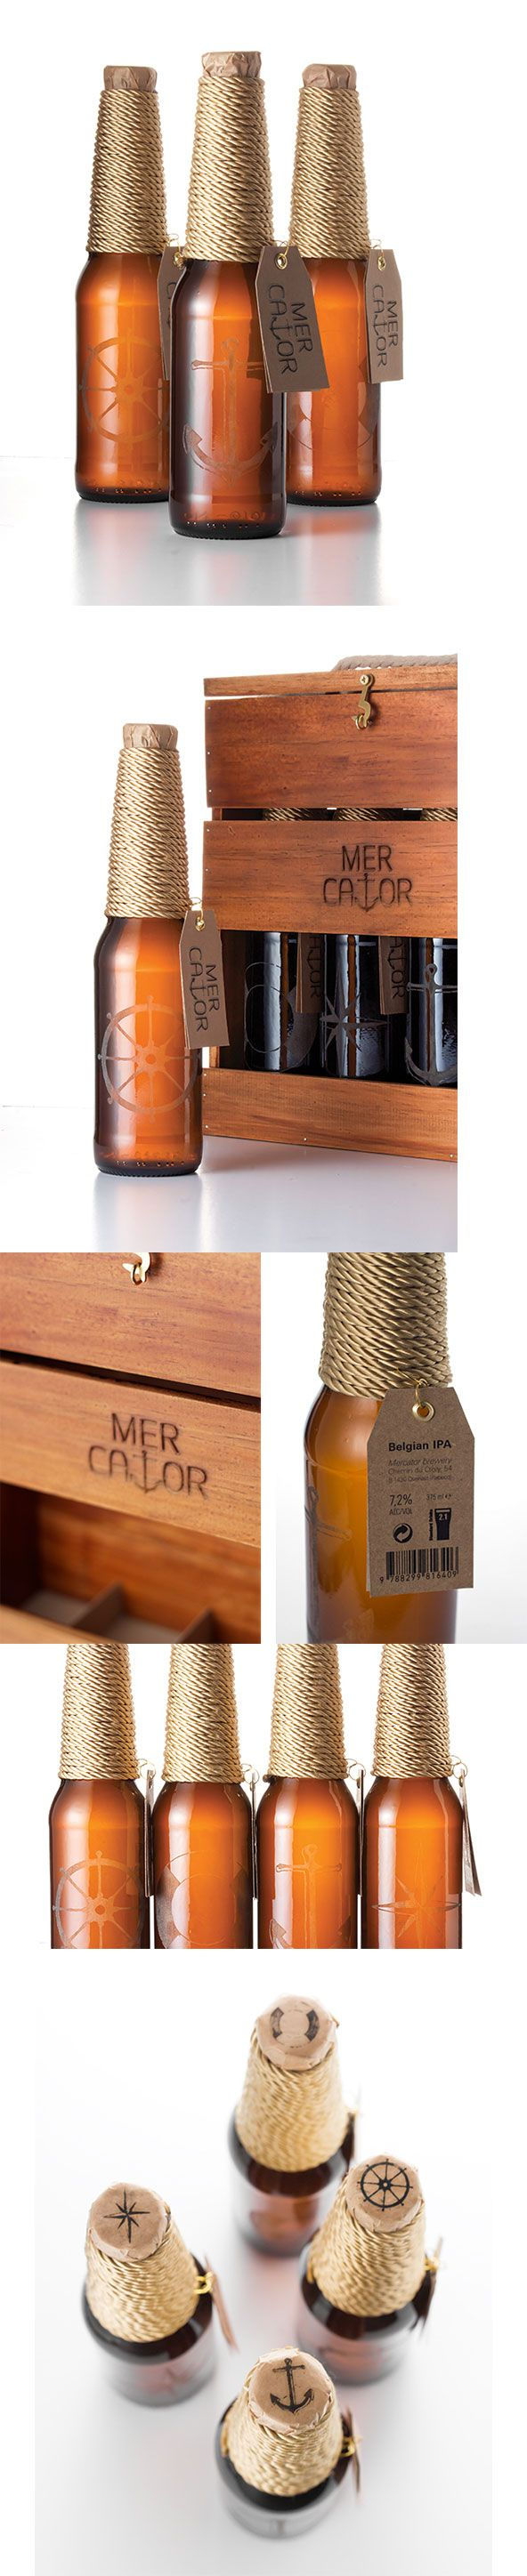 """""""Mercator - beer"""", a project on @Behance http://www.packagingserved.com/gallery/Mercator-beer/5219149"""